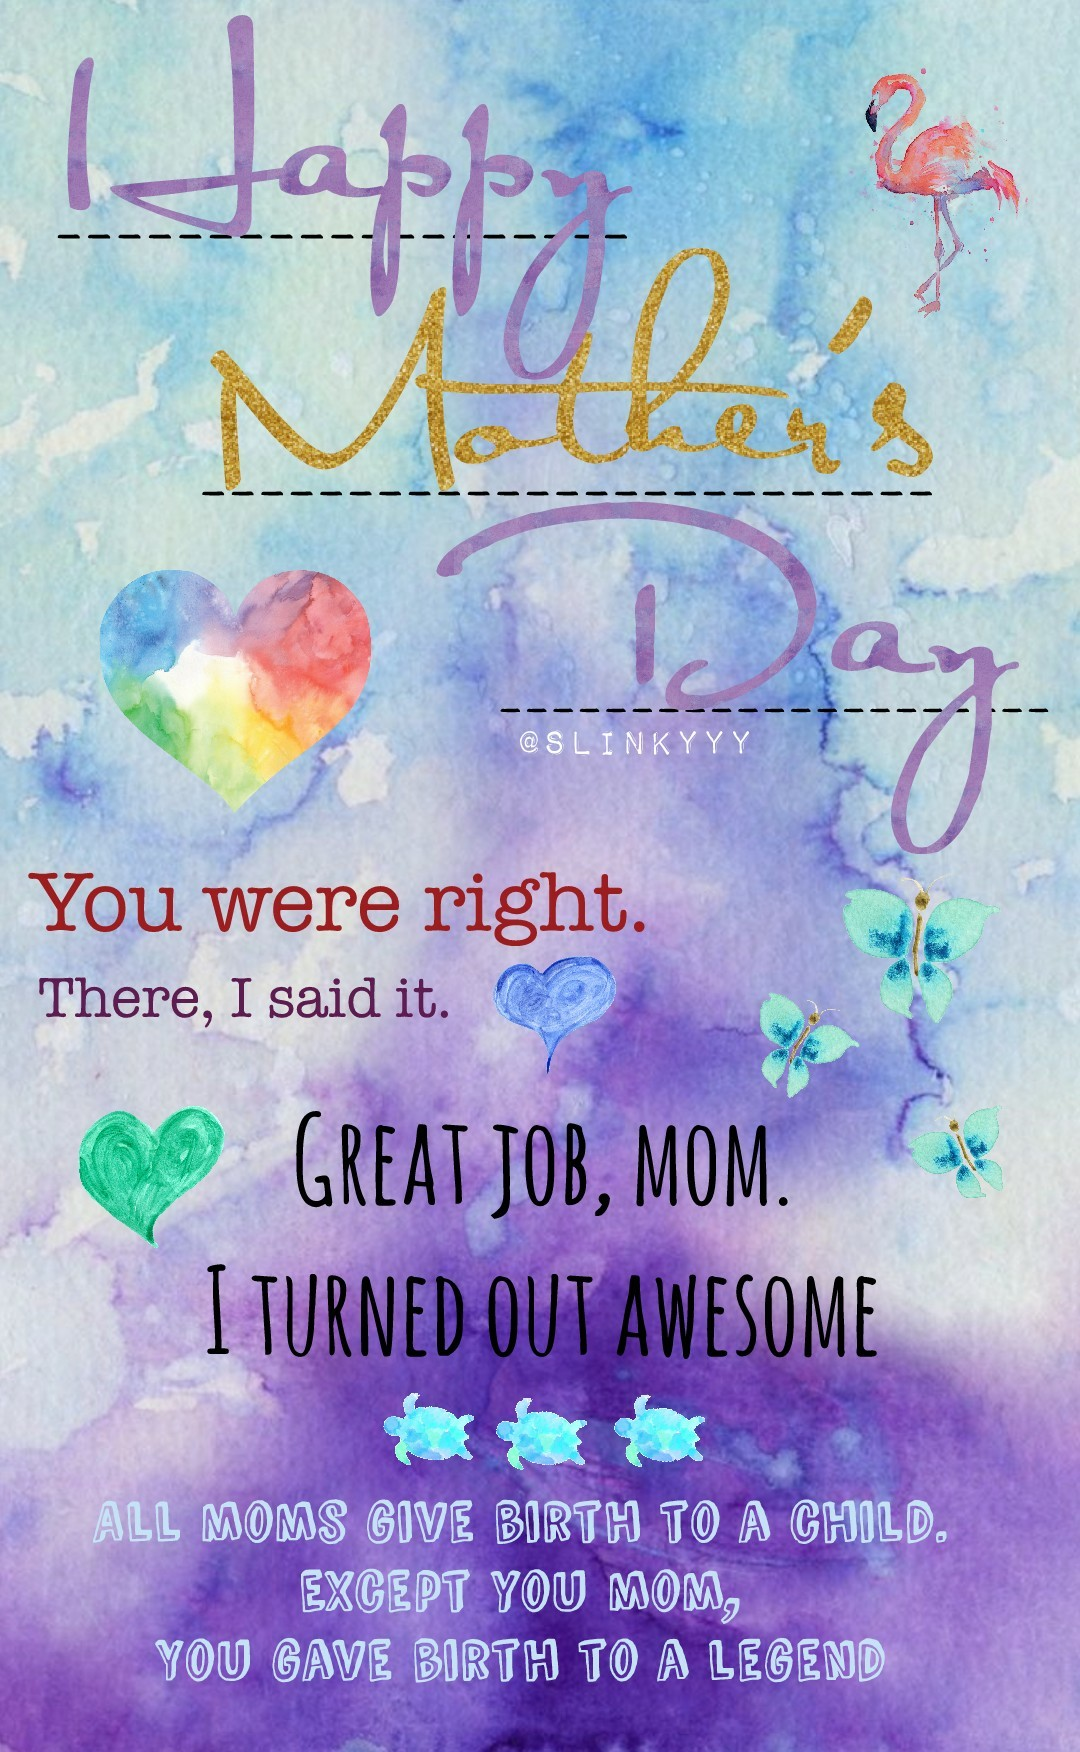 ♧click♧ HAPPY MOTHERS DAY (again for me lol) go do something extra special for your madre! ♡♡♡